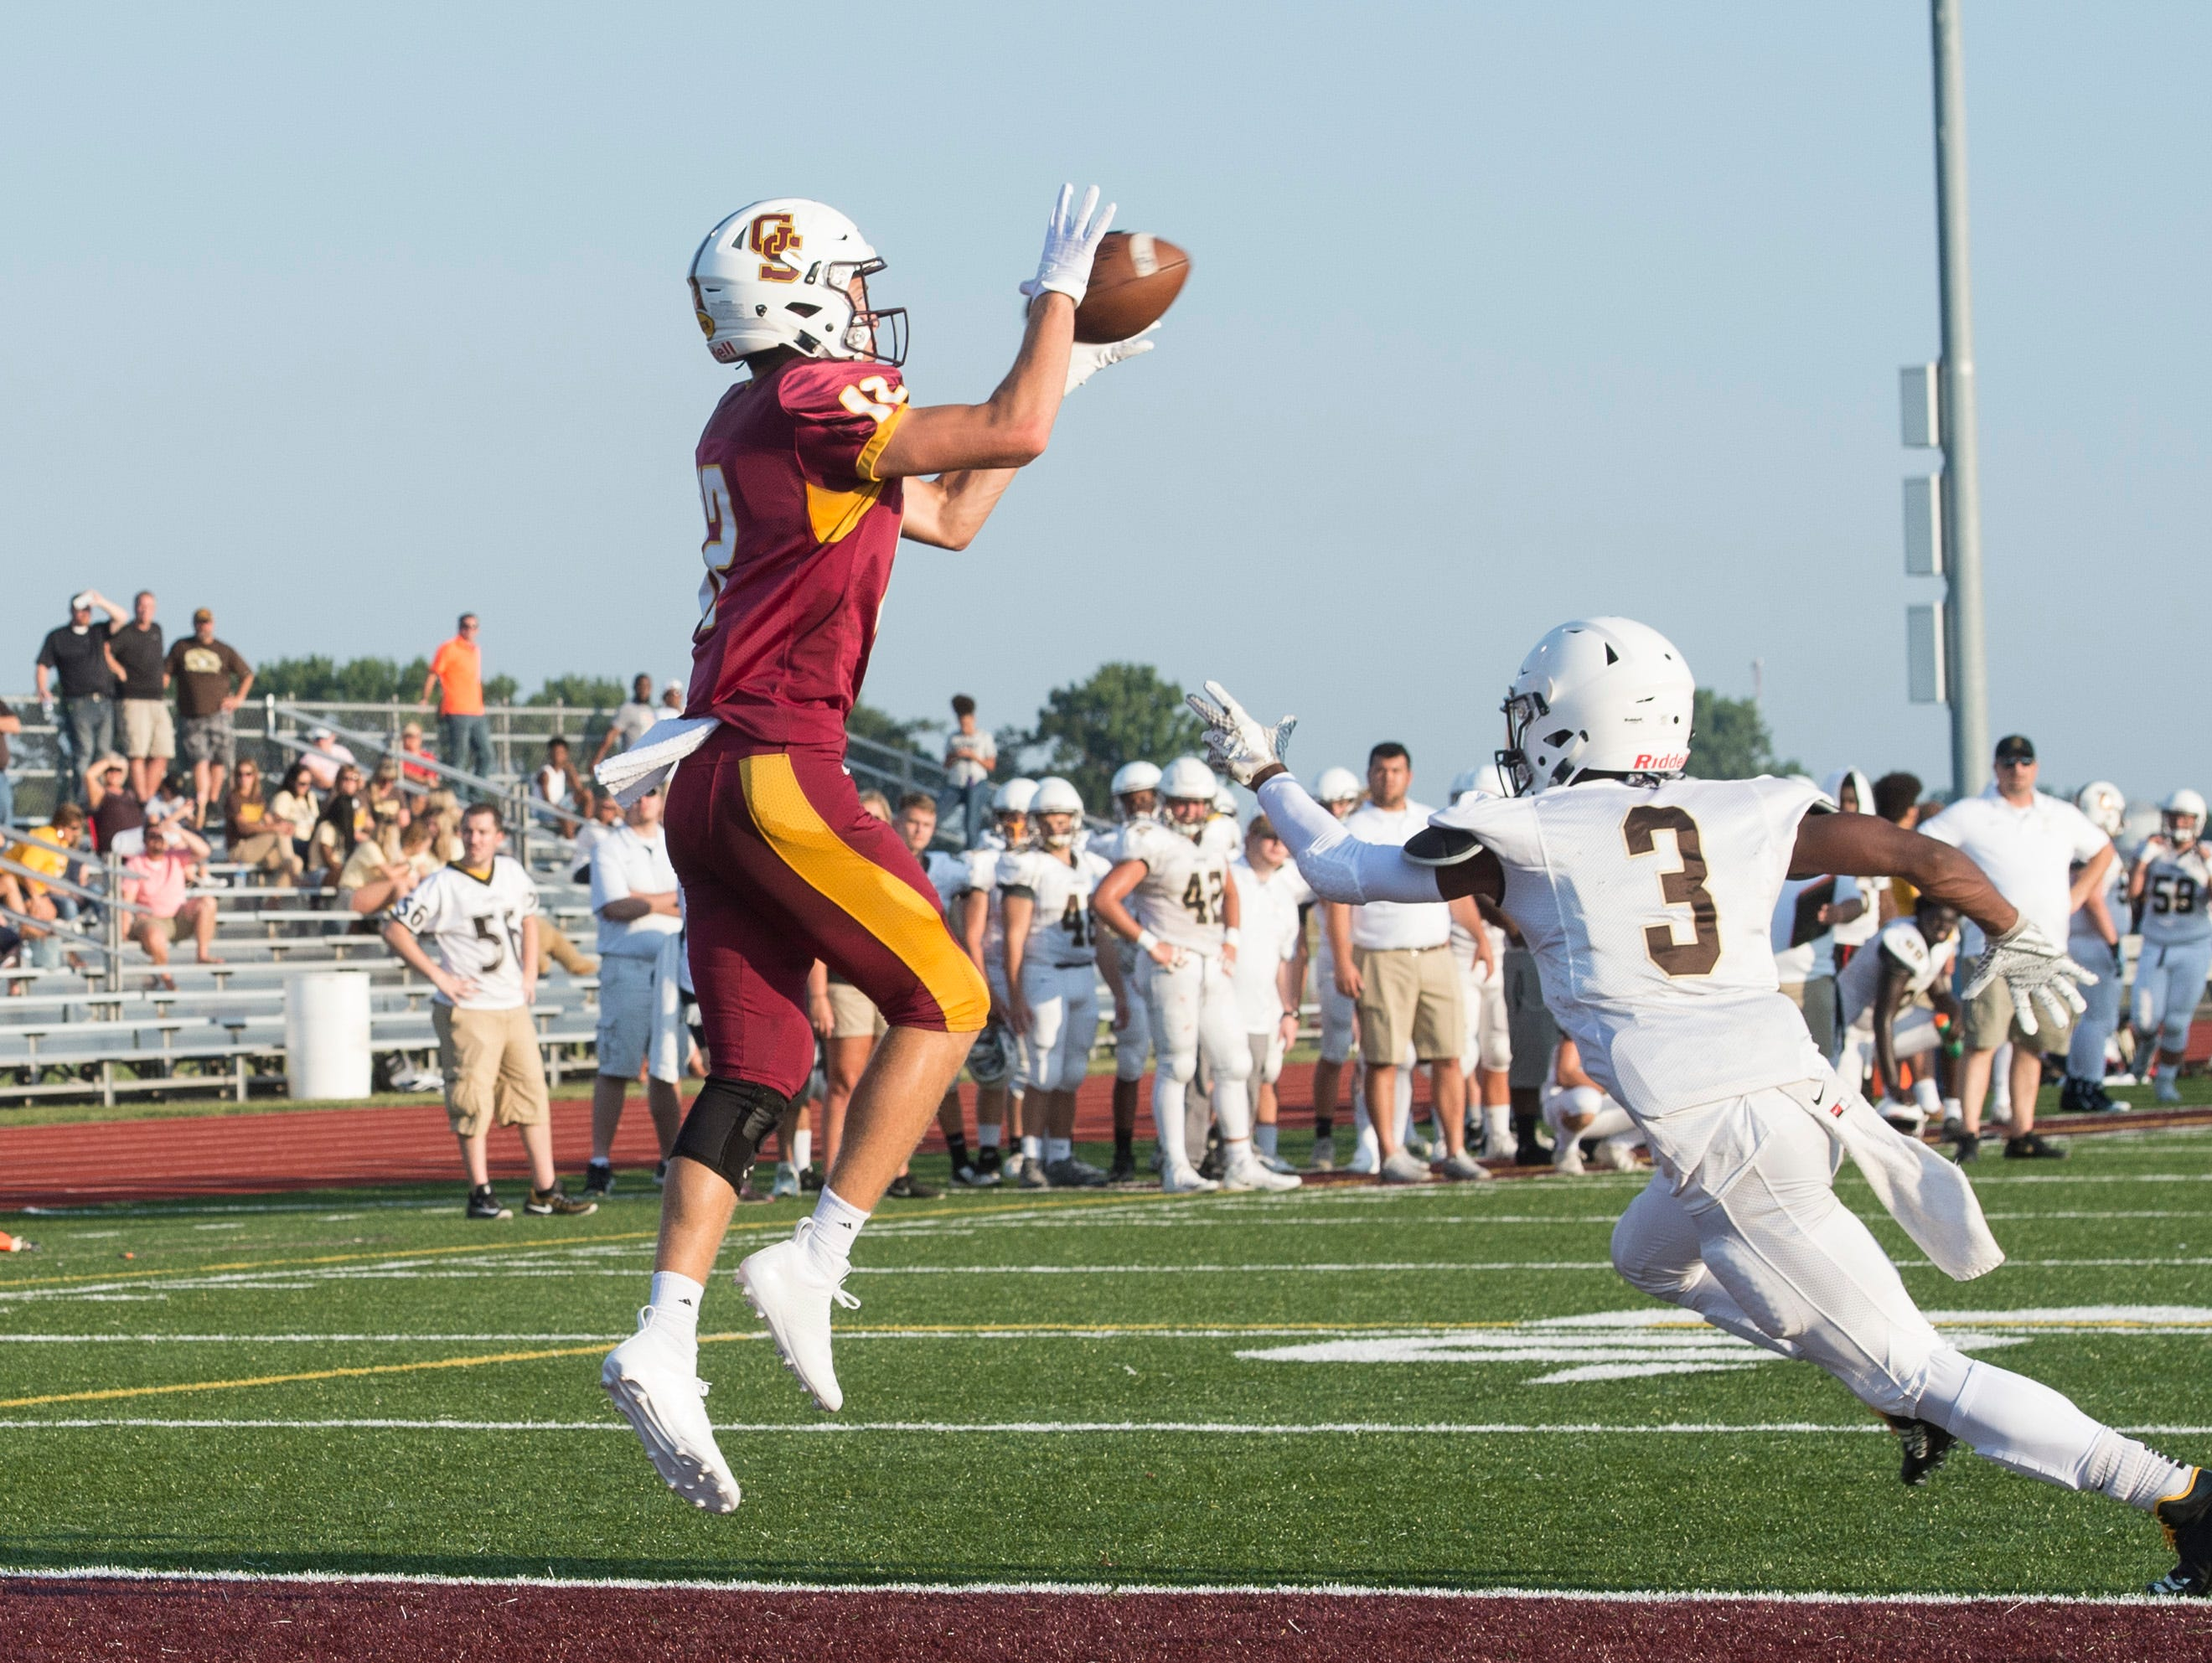 Gibson Southern's Dawson Witte (12) catches the football for a touchdown during a scrimmage against the Evansville Central Bears Friday, August 10, 2018.